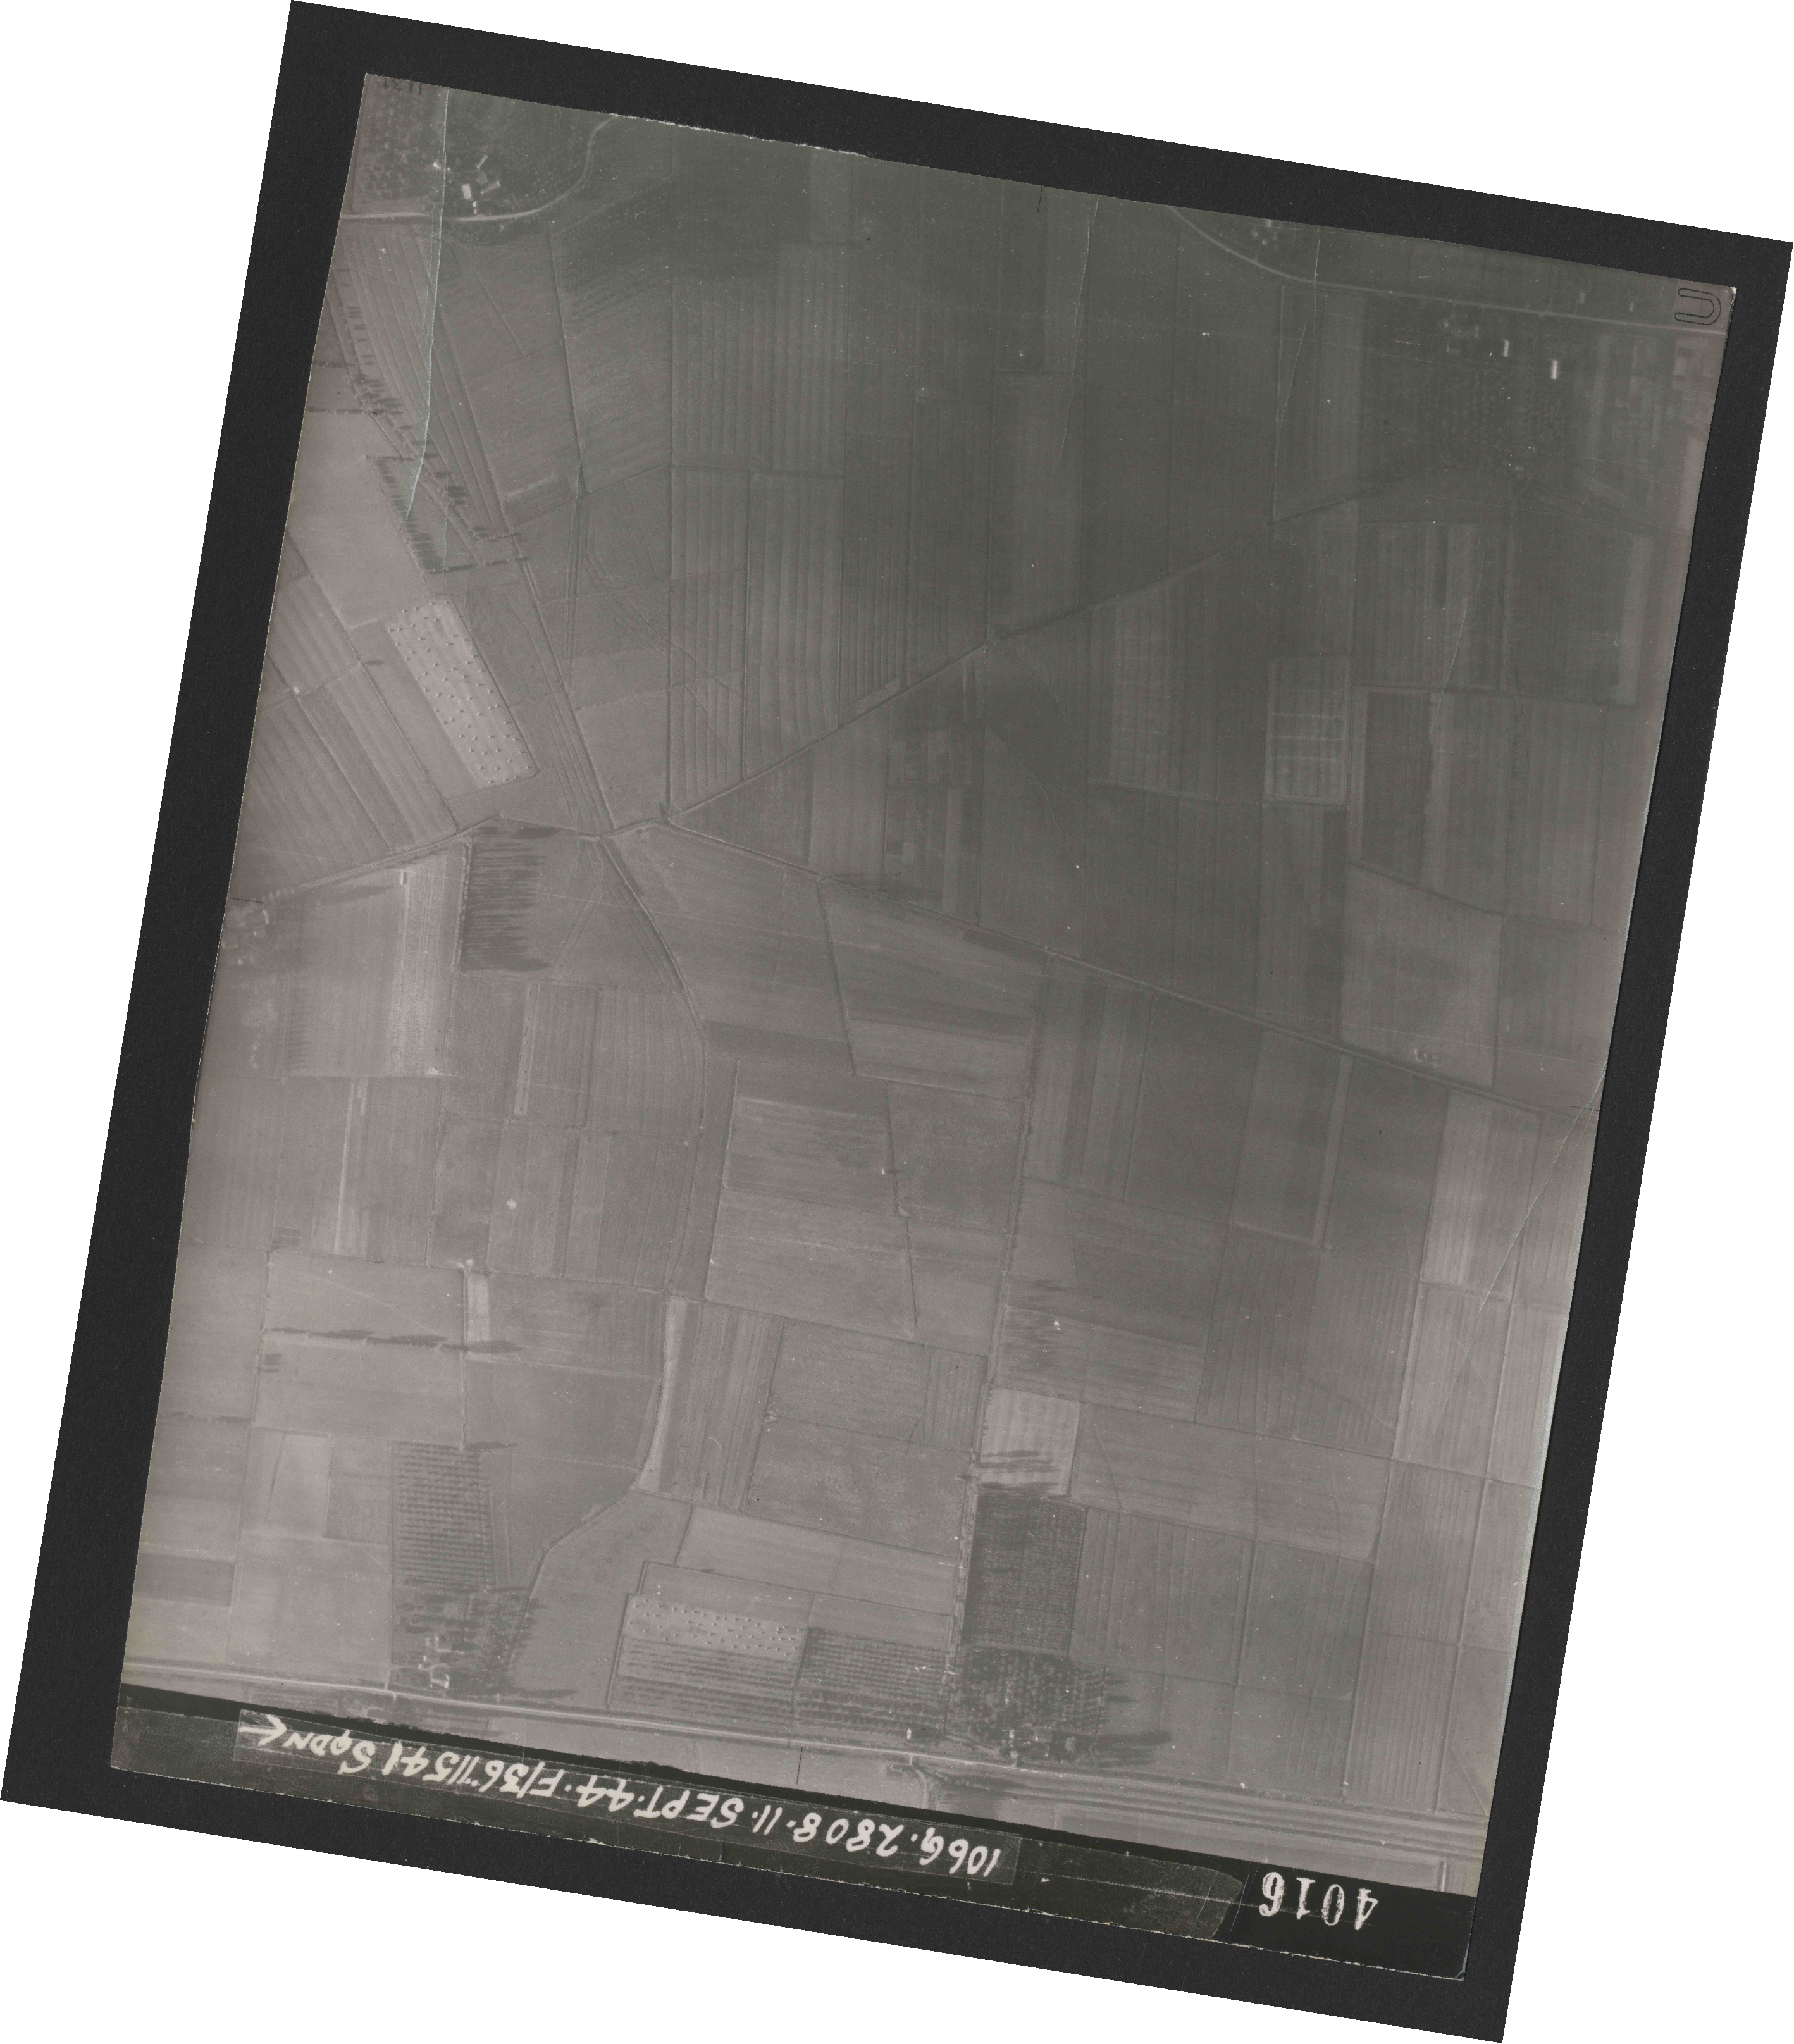 Collection RAF aerial photos 1940-1945 - flight 312, run 02, photo 4016